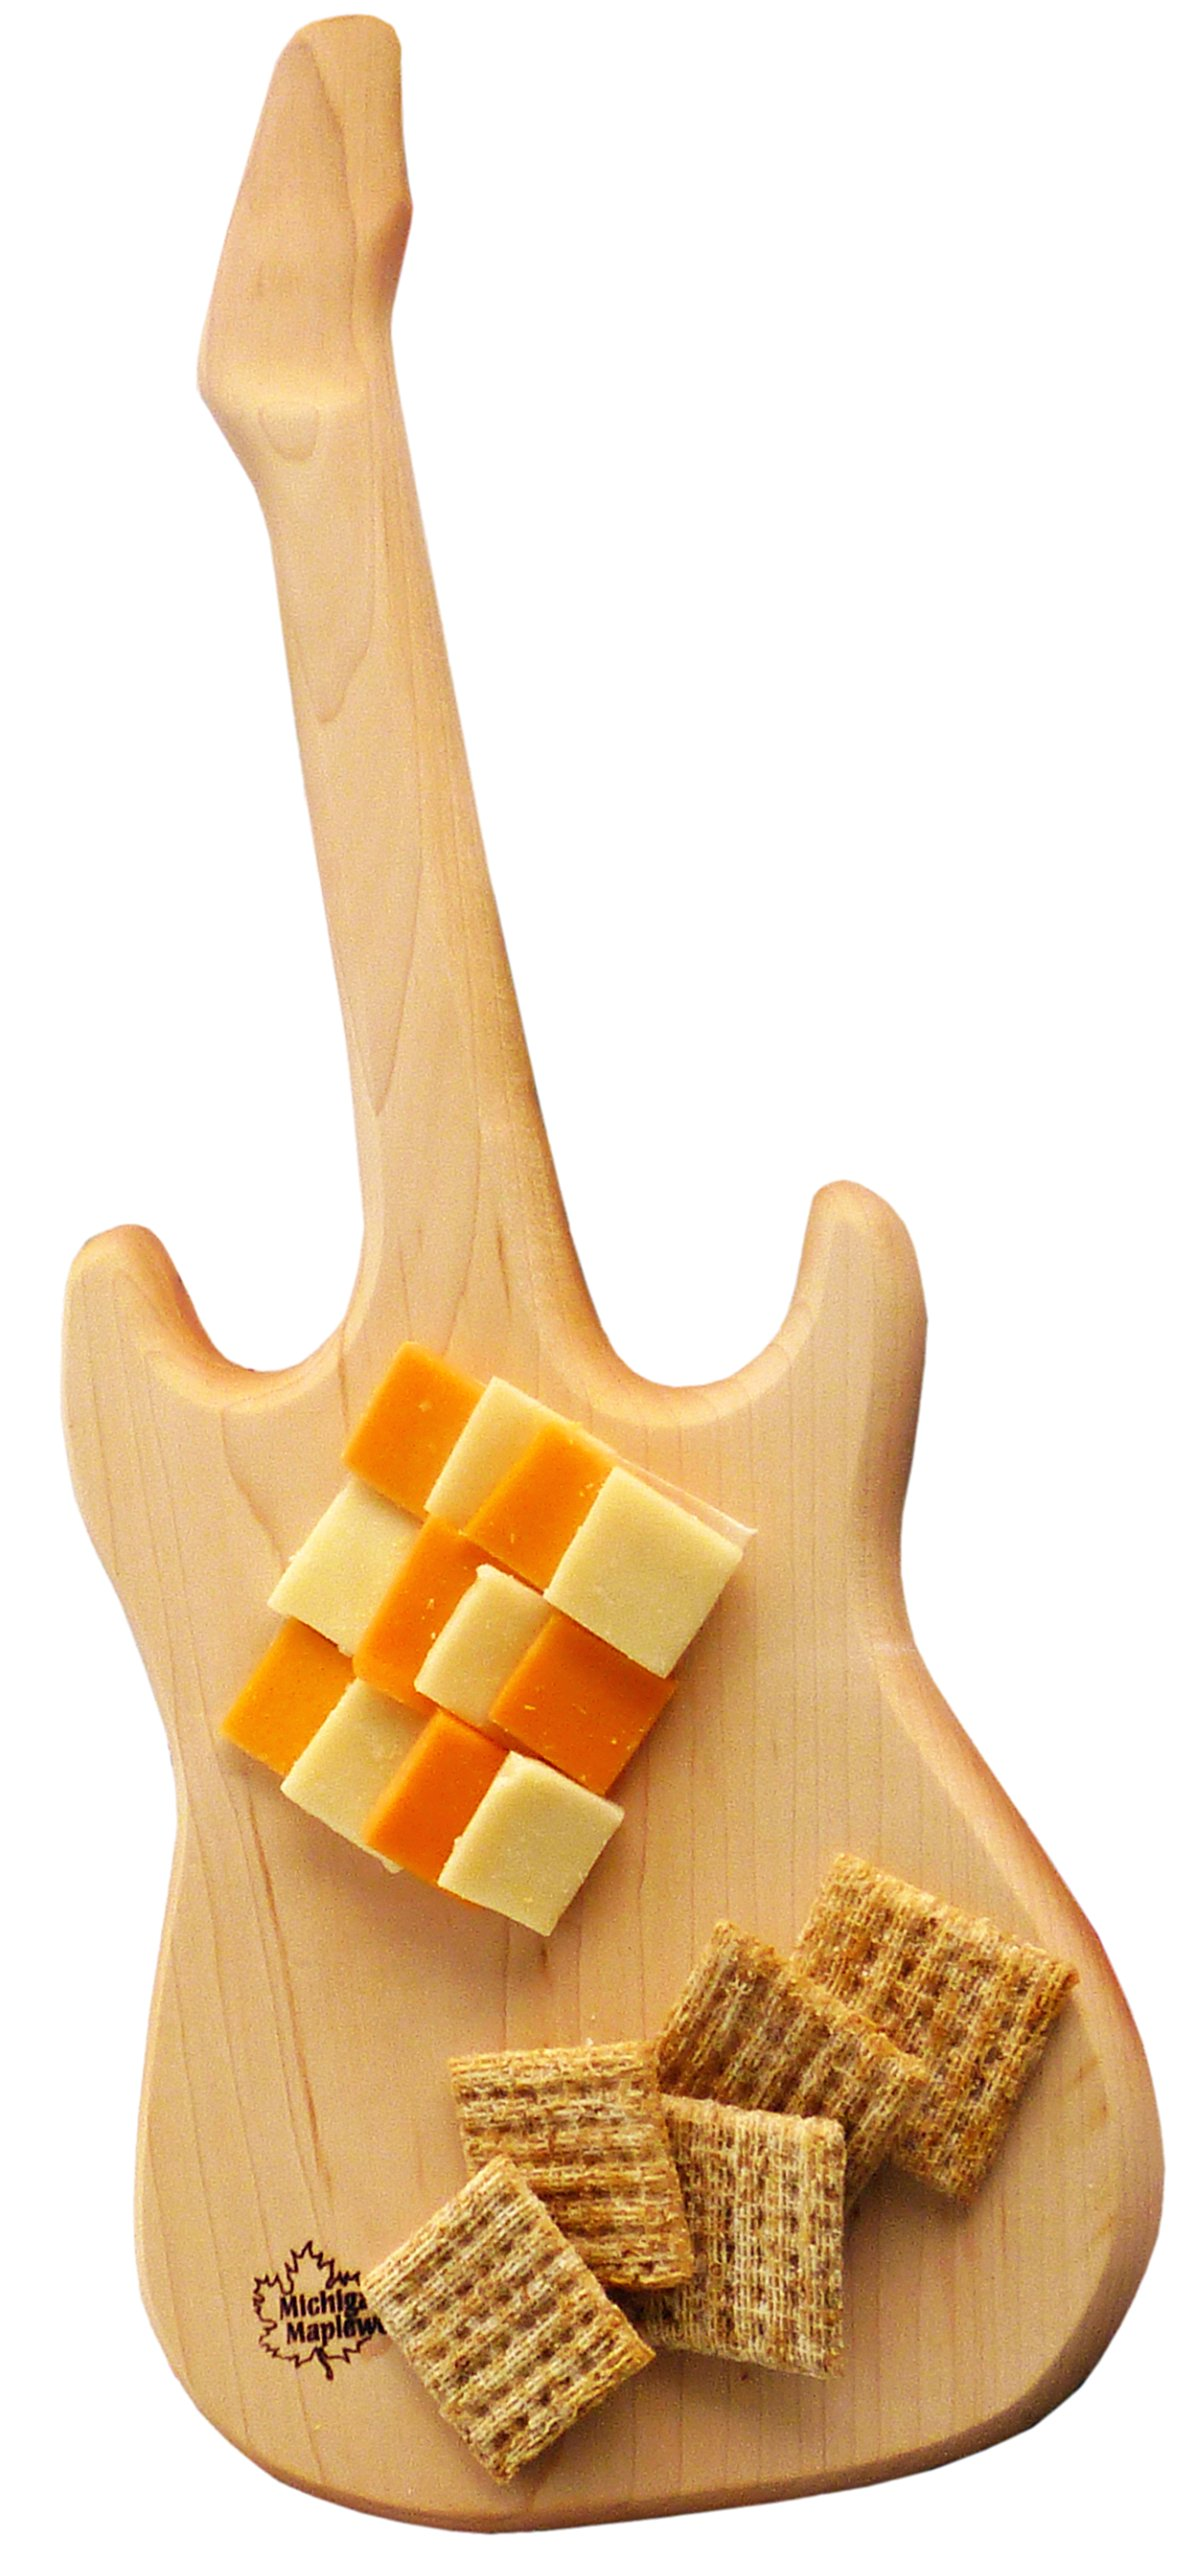 ELECTRIC GUITAR Shaped Solid Wood Maple Cutting Board Gift Set - MADE IN USA. Guitar Serving Board | Housewarming Gift or Music Gift for Home Decor